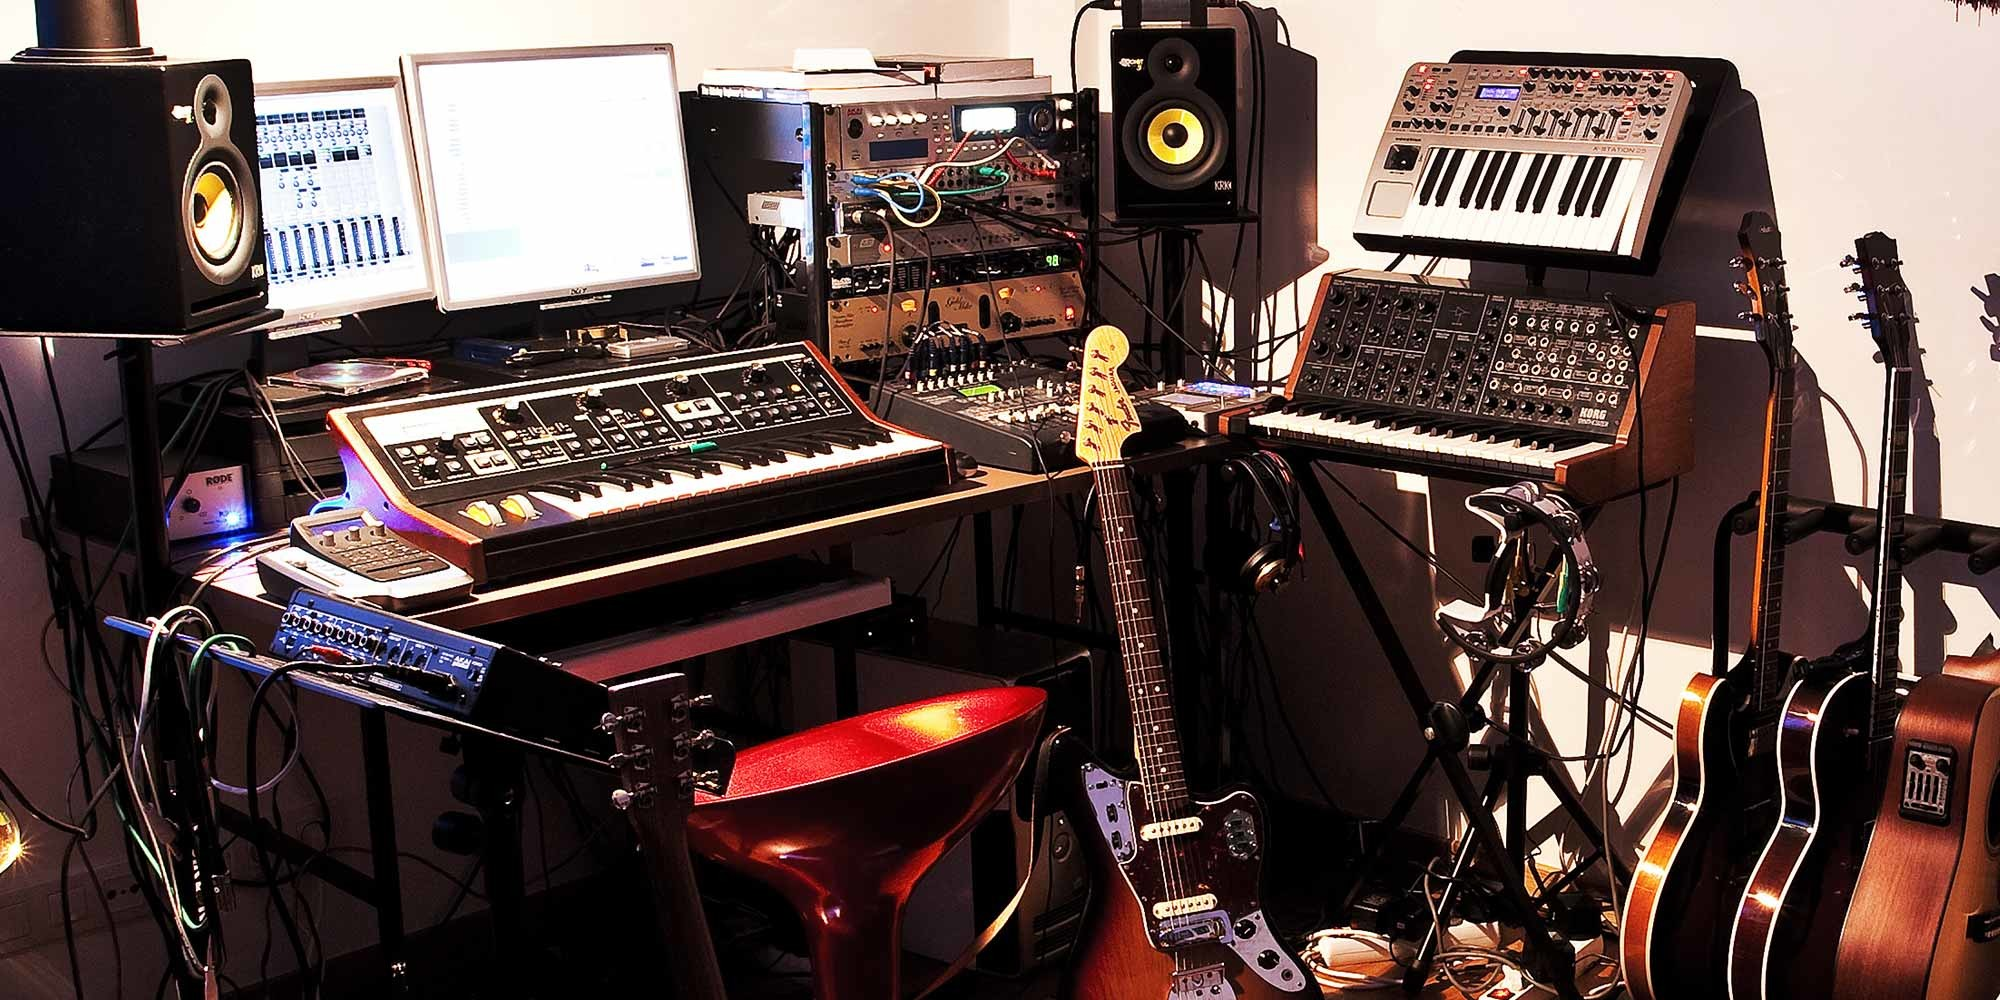 Tremendous 5 Home Studio Upgrades To Make Your Recordings Sound Less Reverb Largest Home Design Picture Inspirations Pitcheantrous